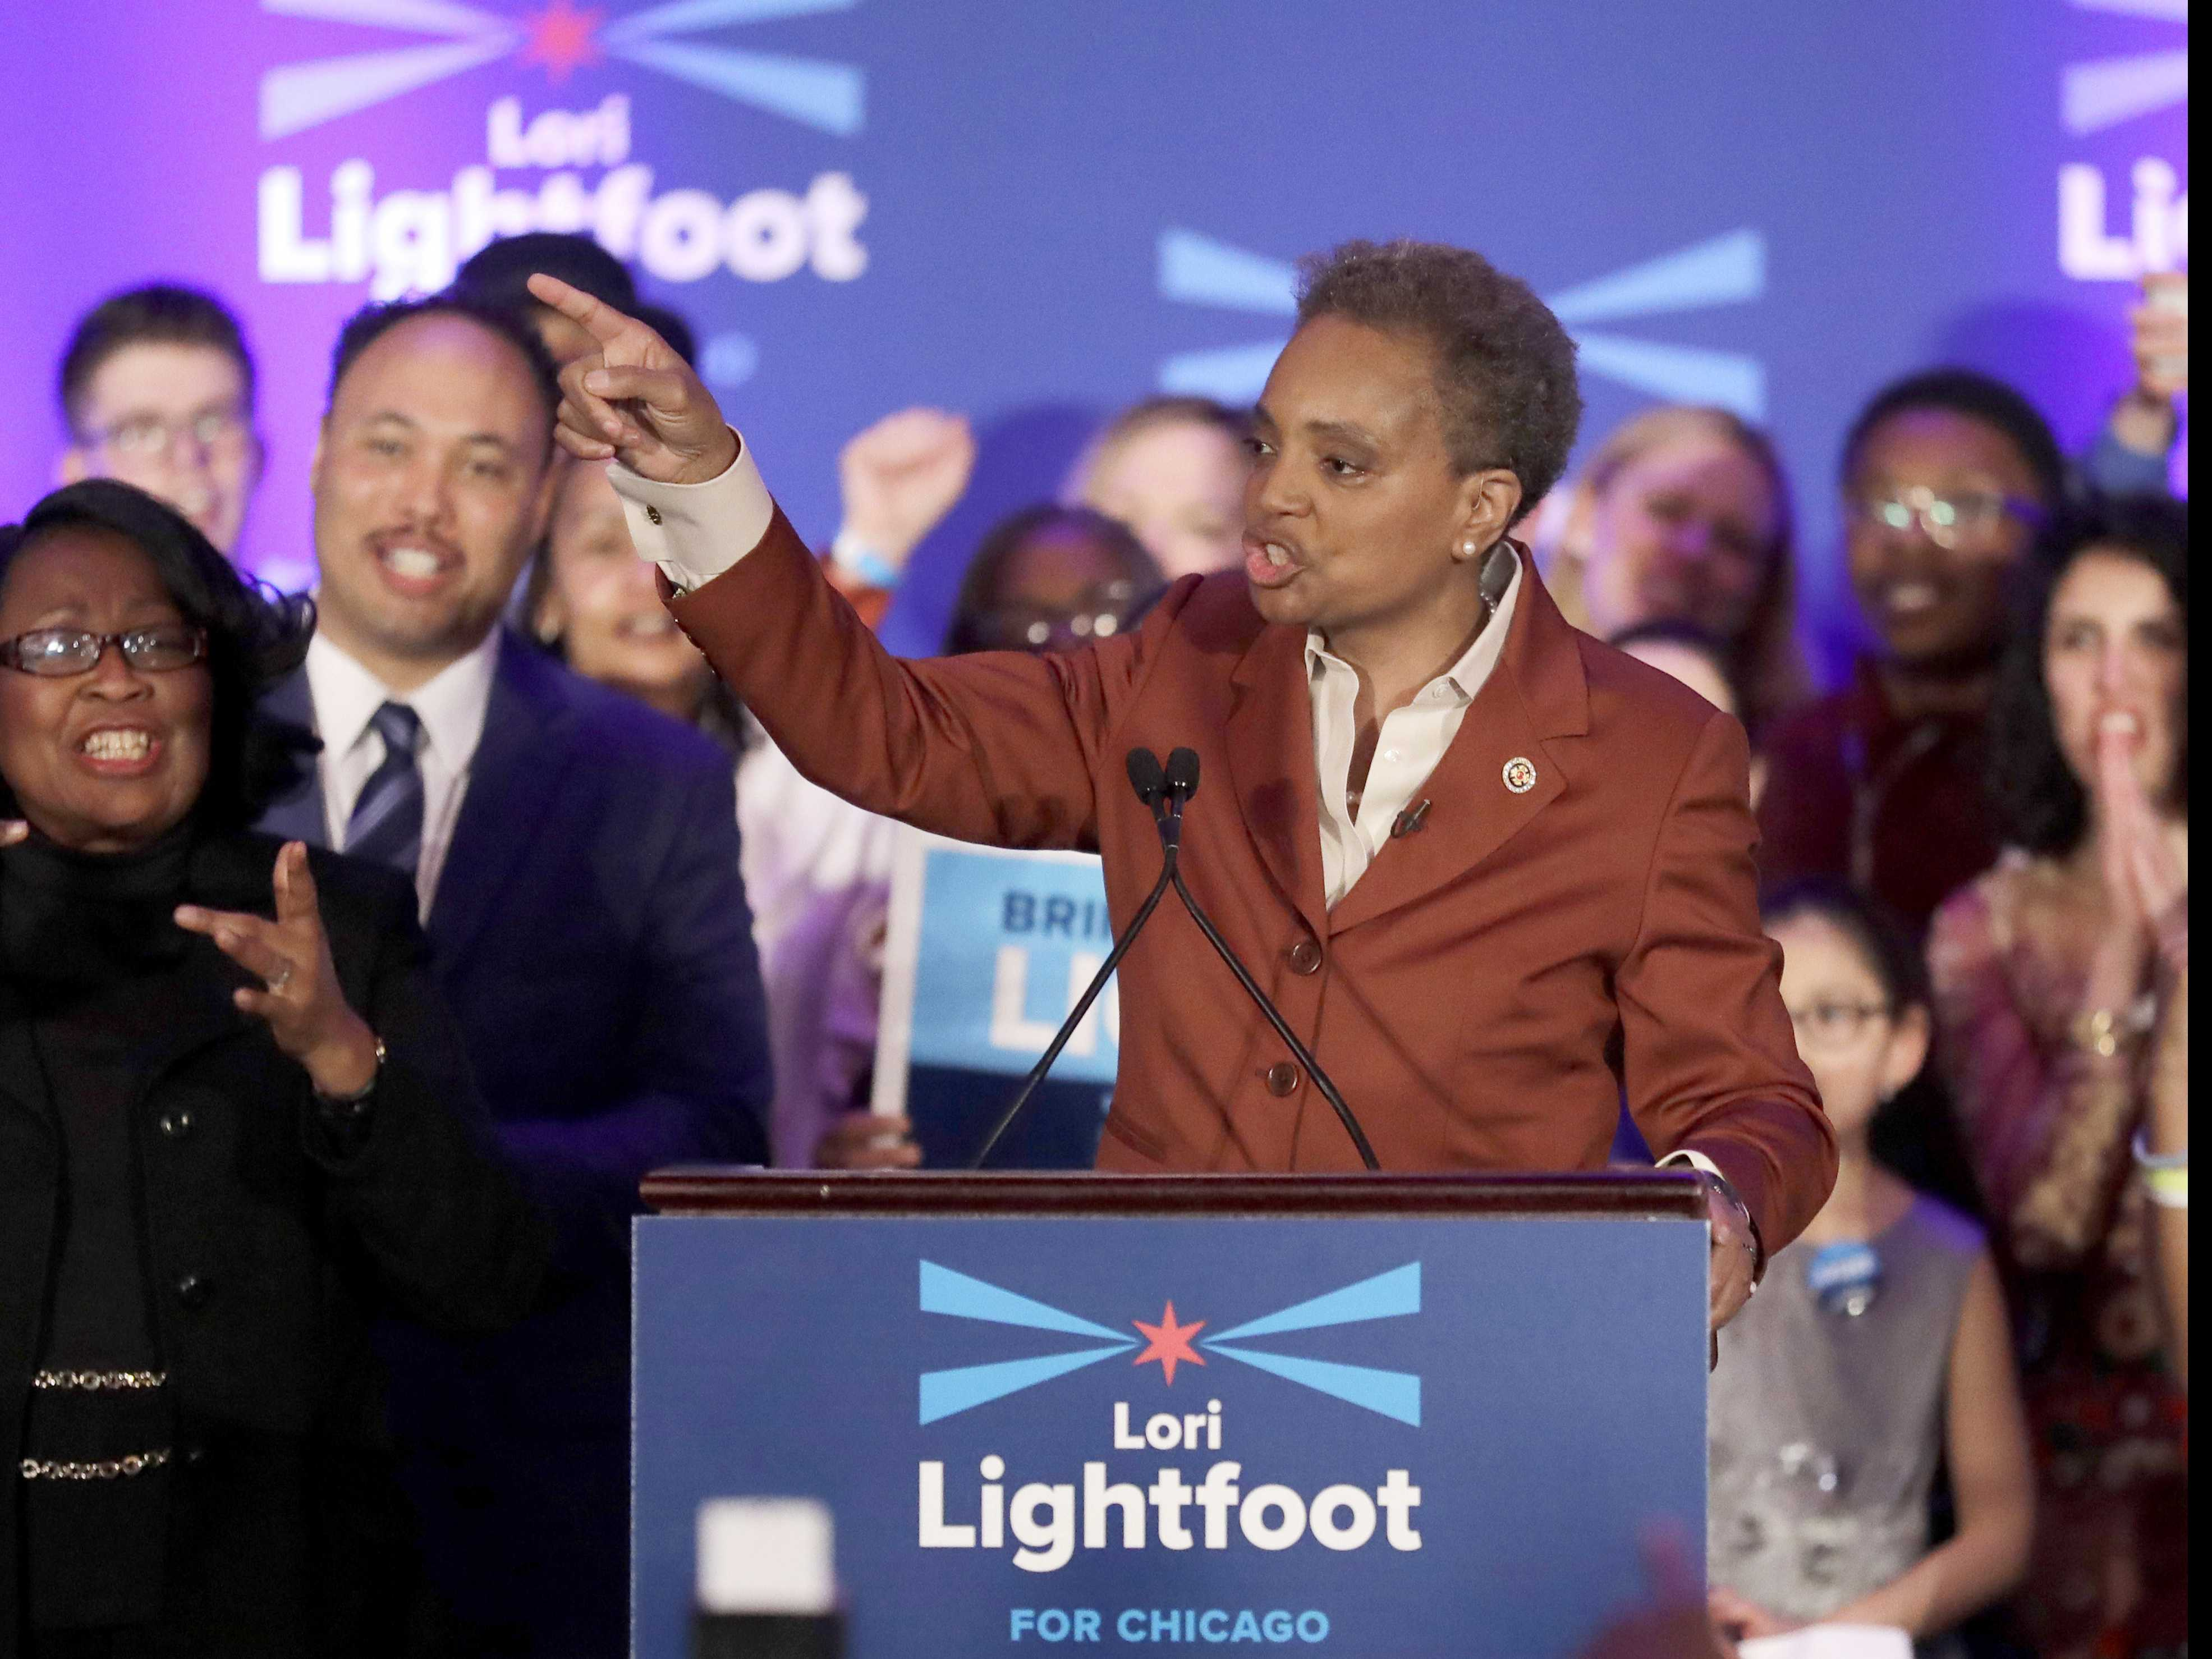 Incoming Chicago Mayor has Path to Historic Police Reforms